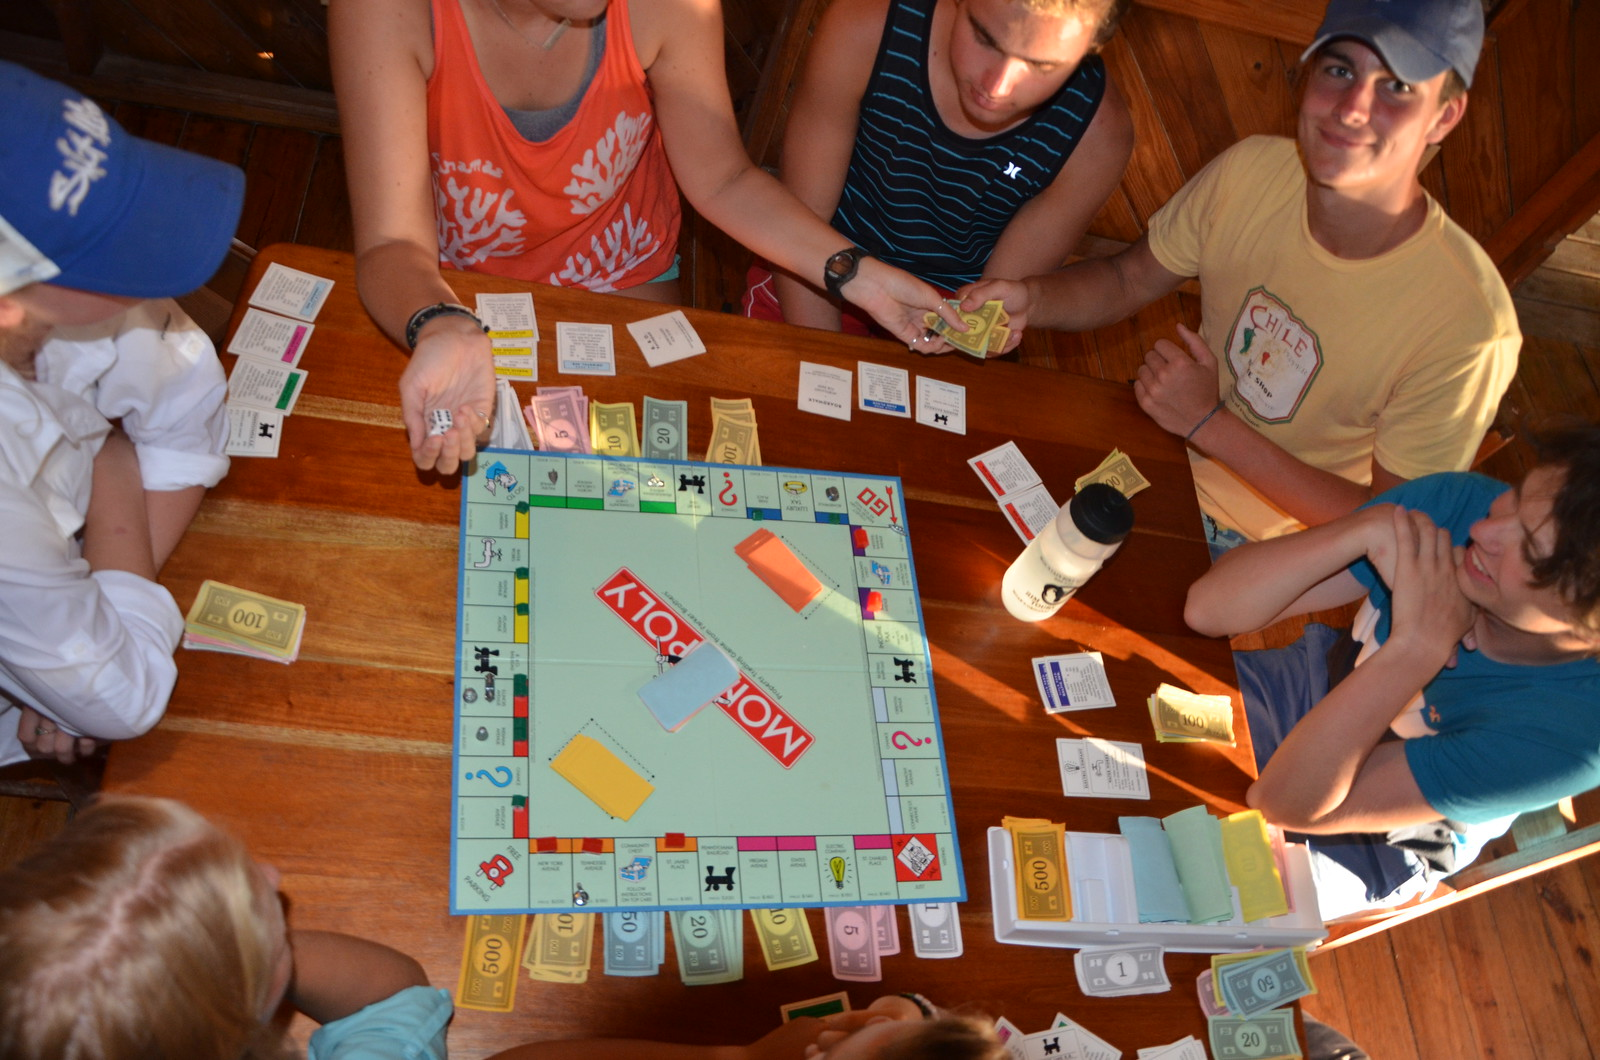 An exciting game of Monopoly after dinner.